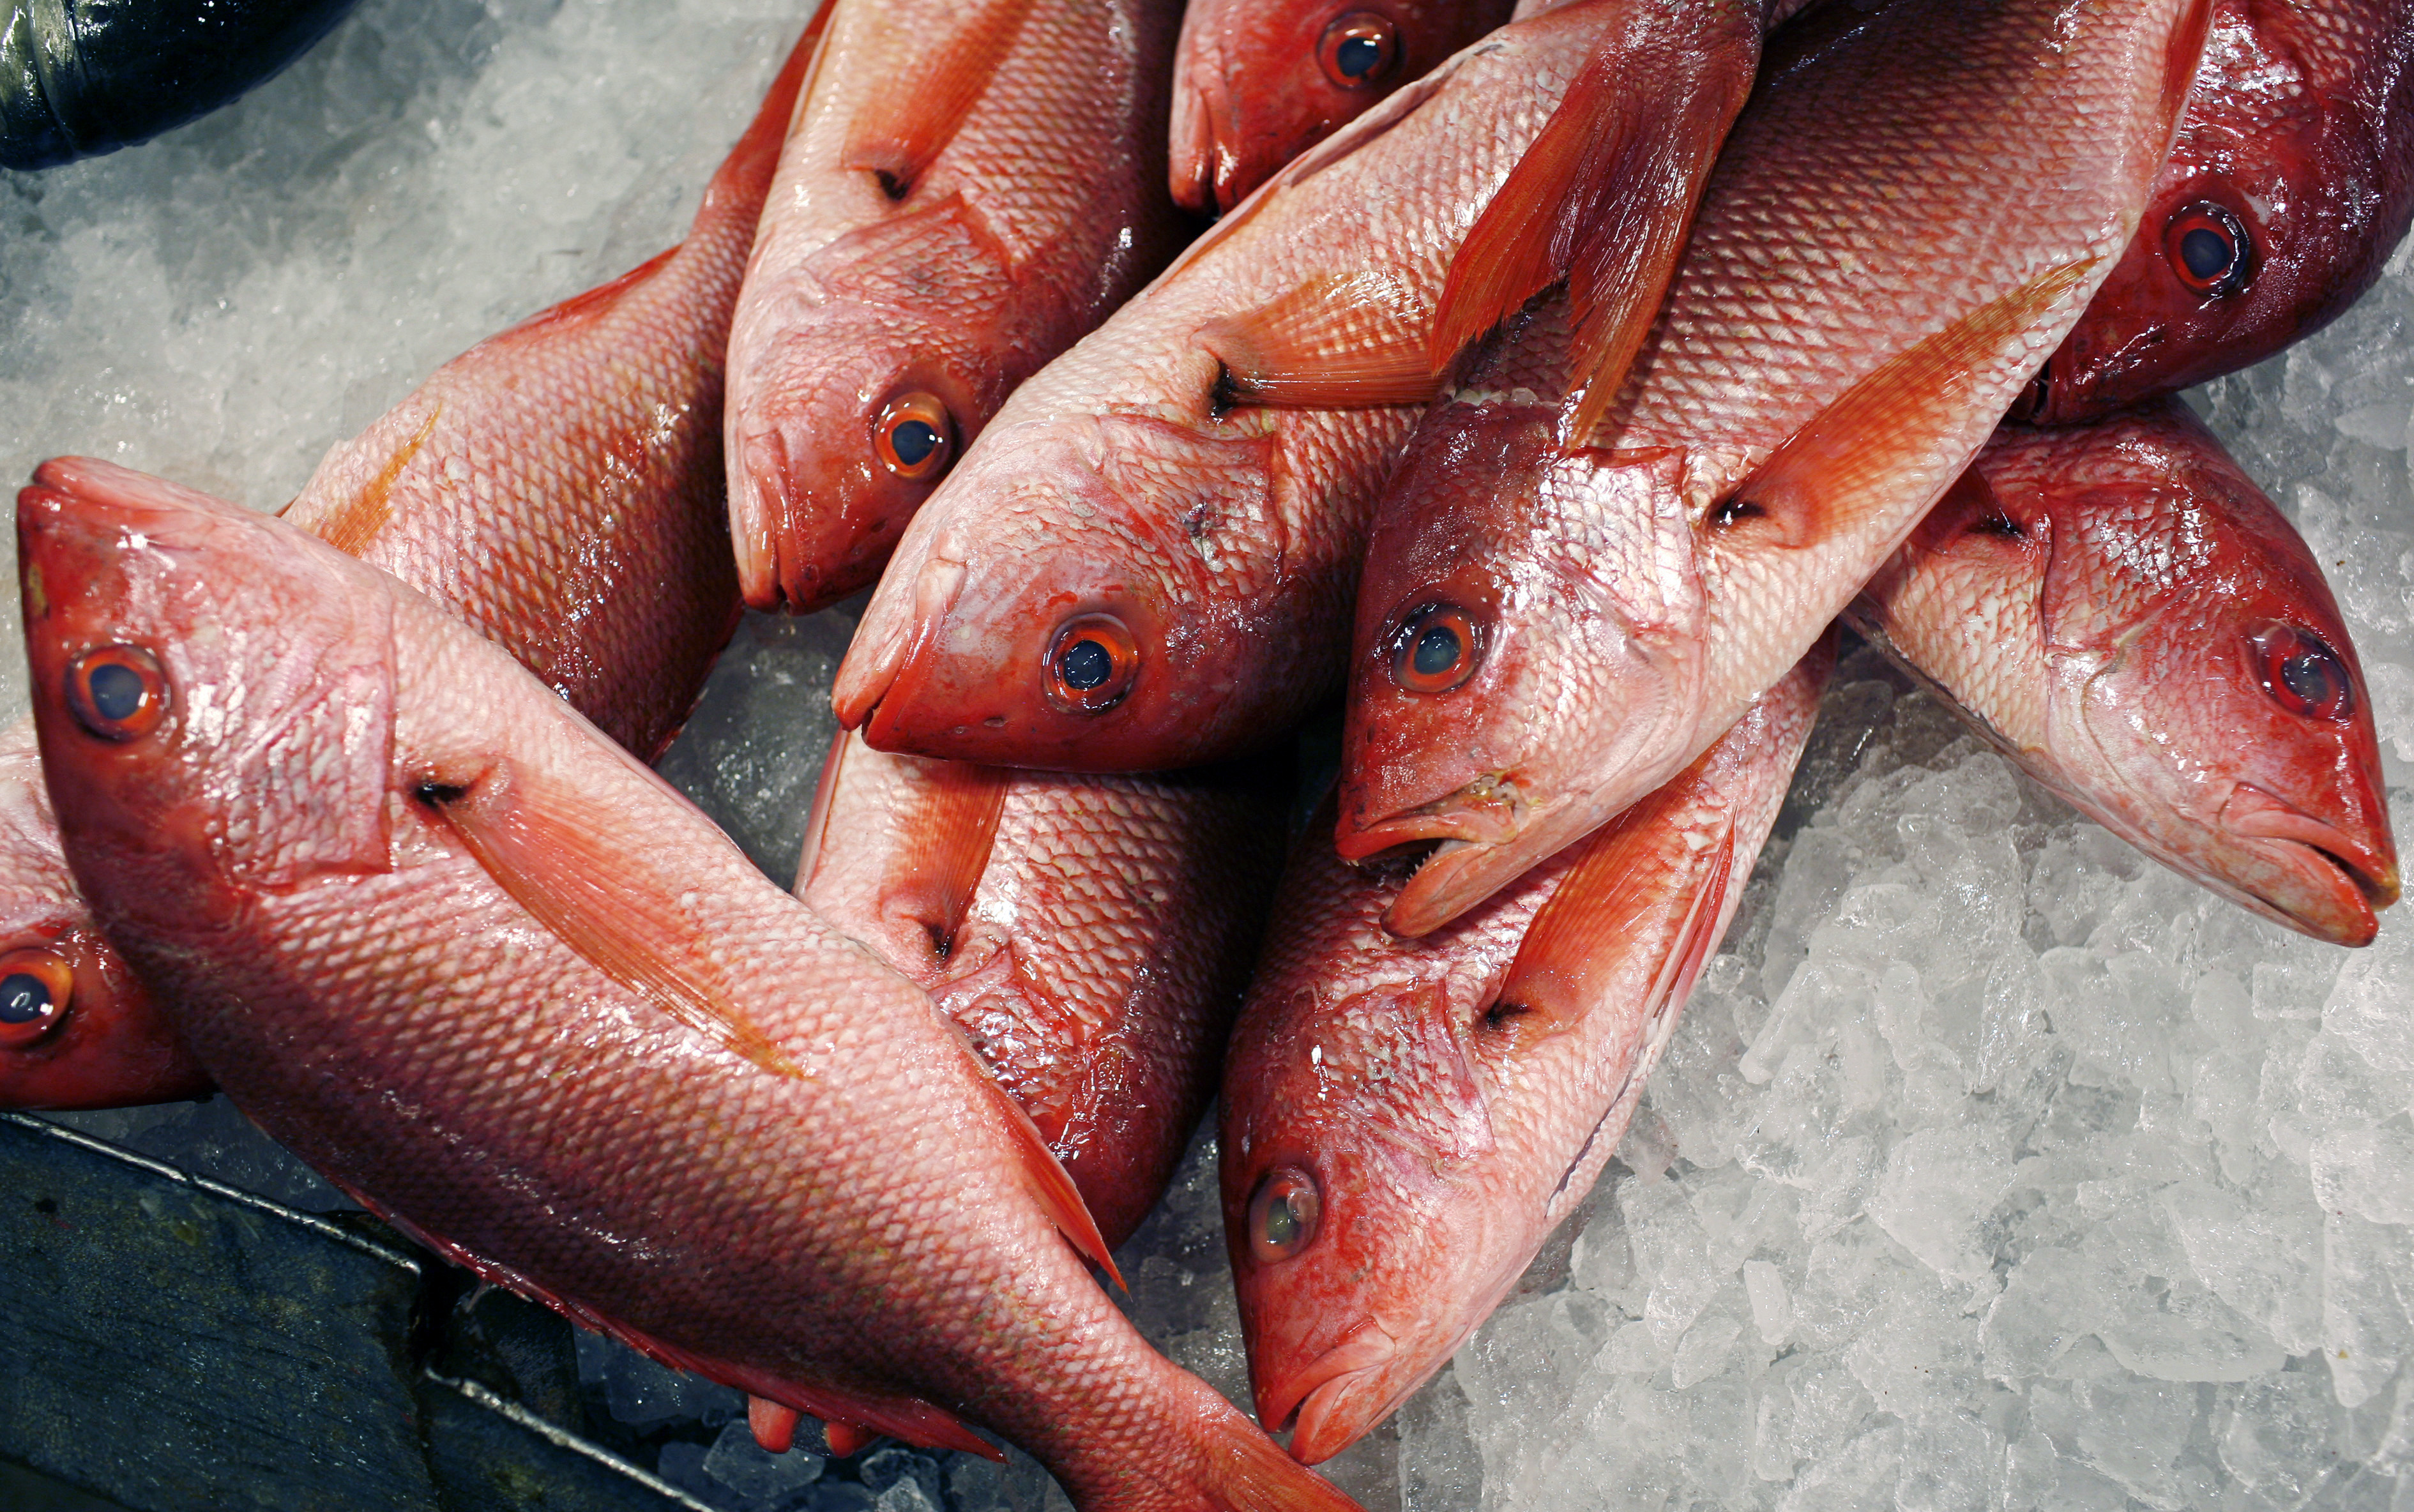 Red snappers lay on ice for sale at JMS Seafood, a fish wholesaler in the New Fulton Fish Market in the Bronx section of New York City June 21, 2010.